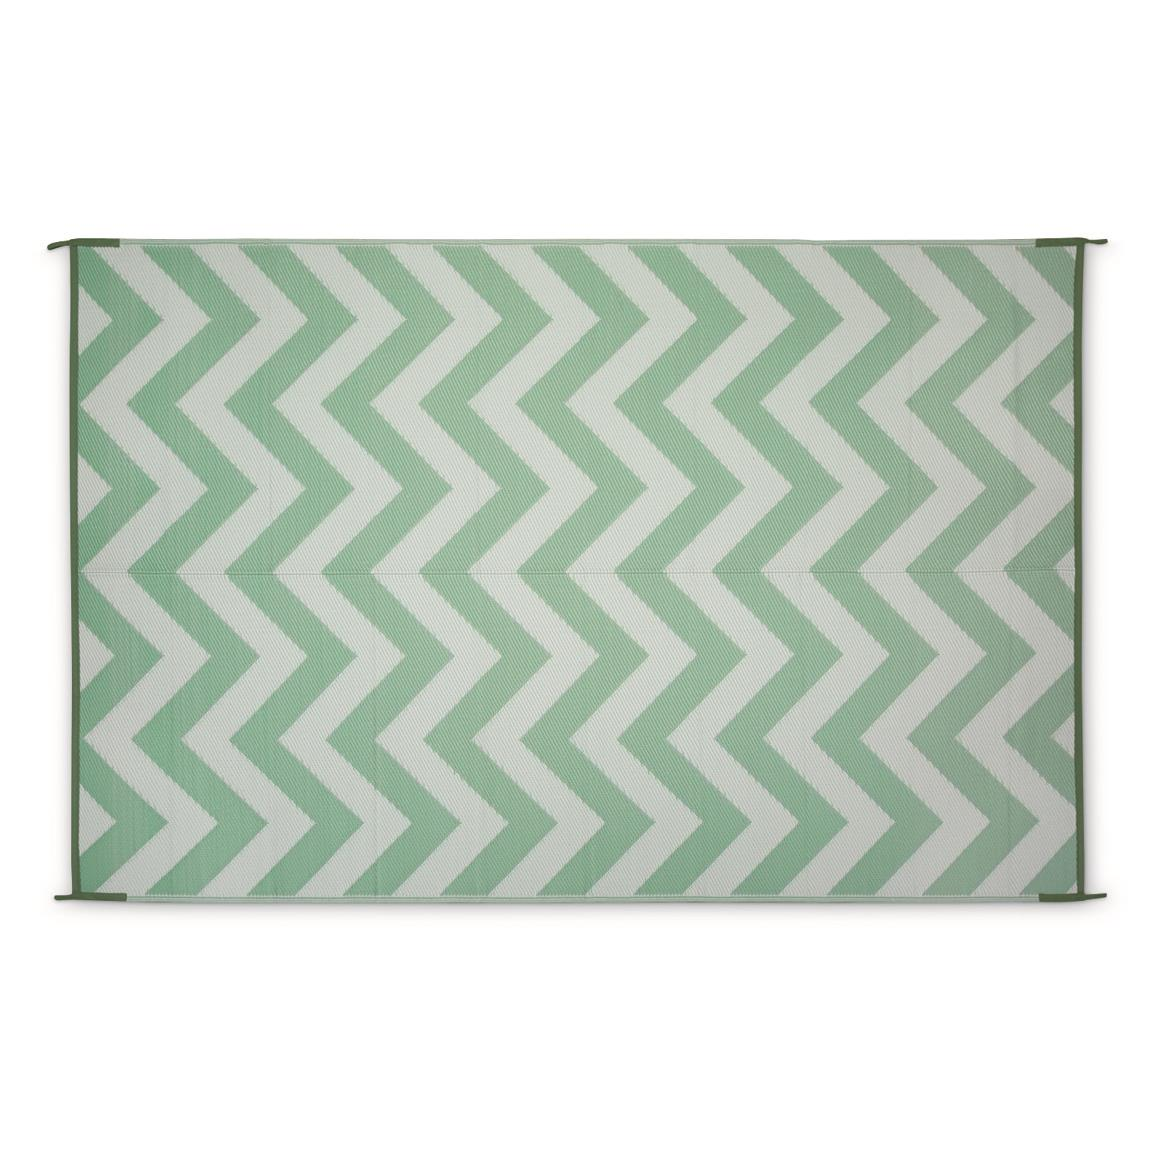 Guide Gear Chevron Outdoor Rug, Seafoam/white